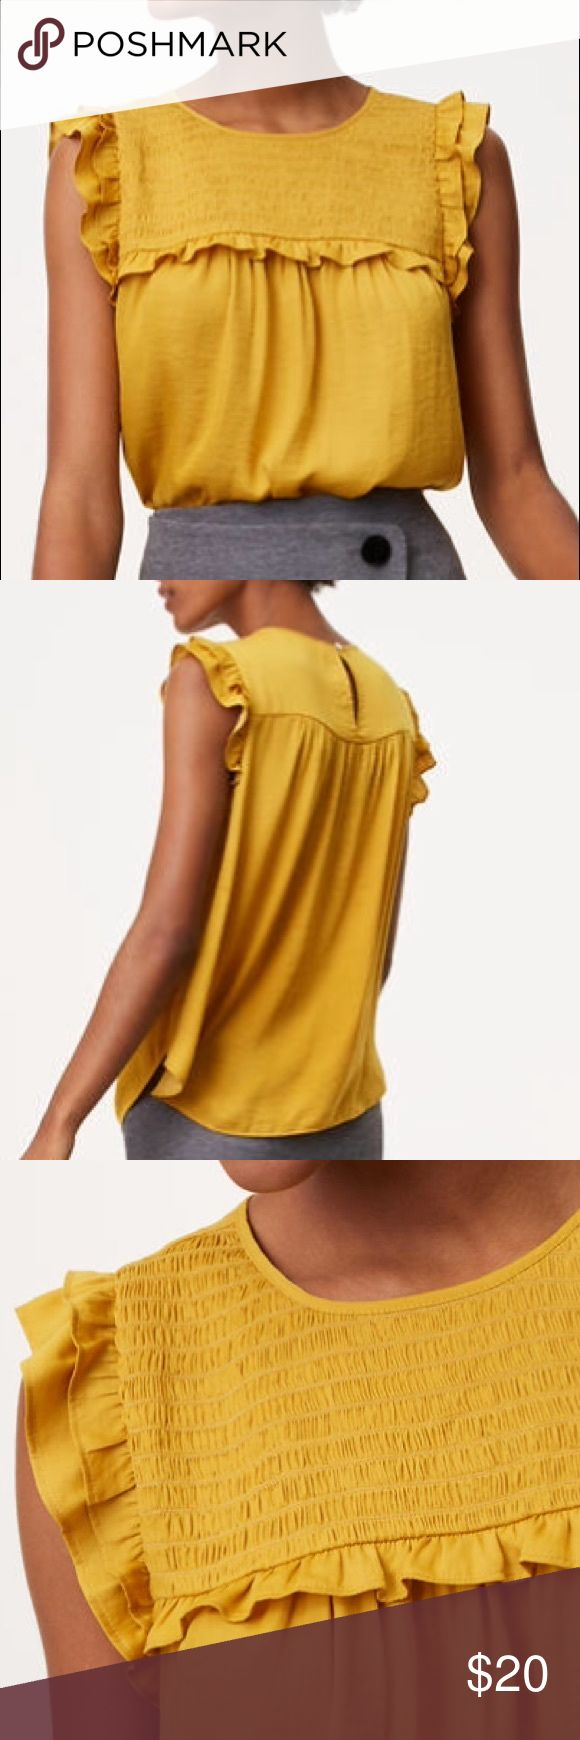 Smocked silky top from LOFT Silky ruffle trim top by LOFT in pretty yellow color. NWOT. never worn size petite medium. Perfect condition. LOFT Tops